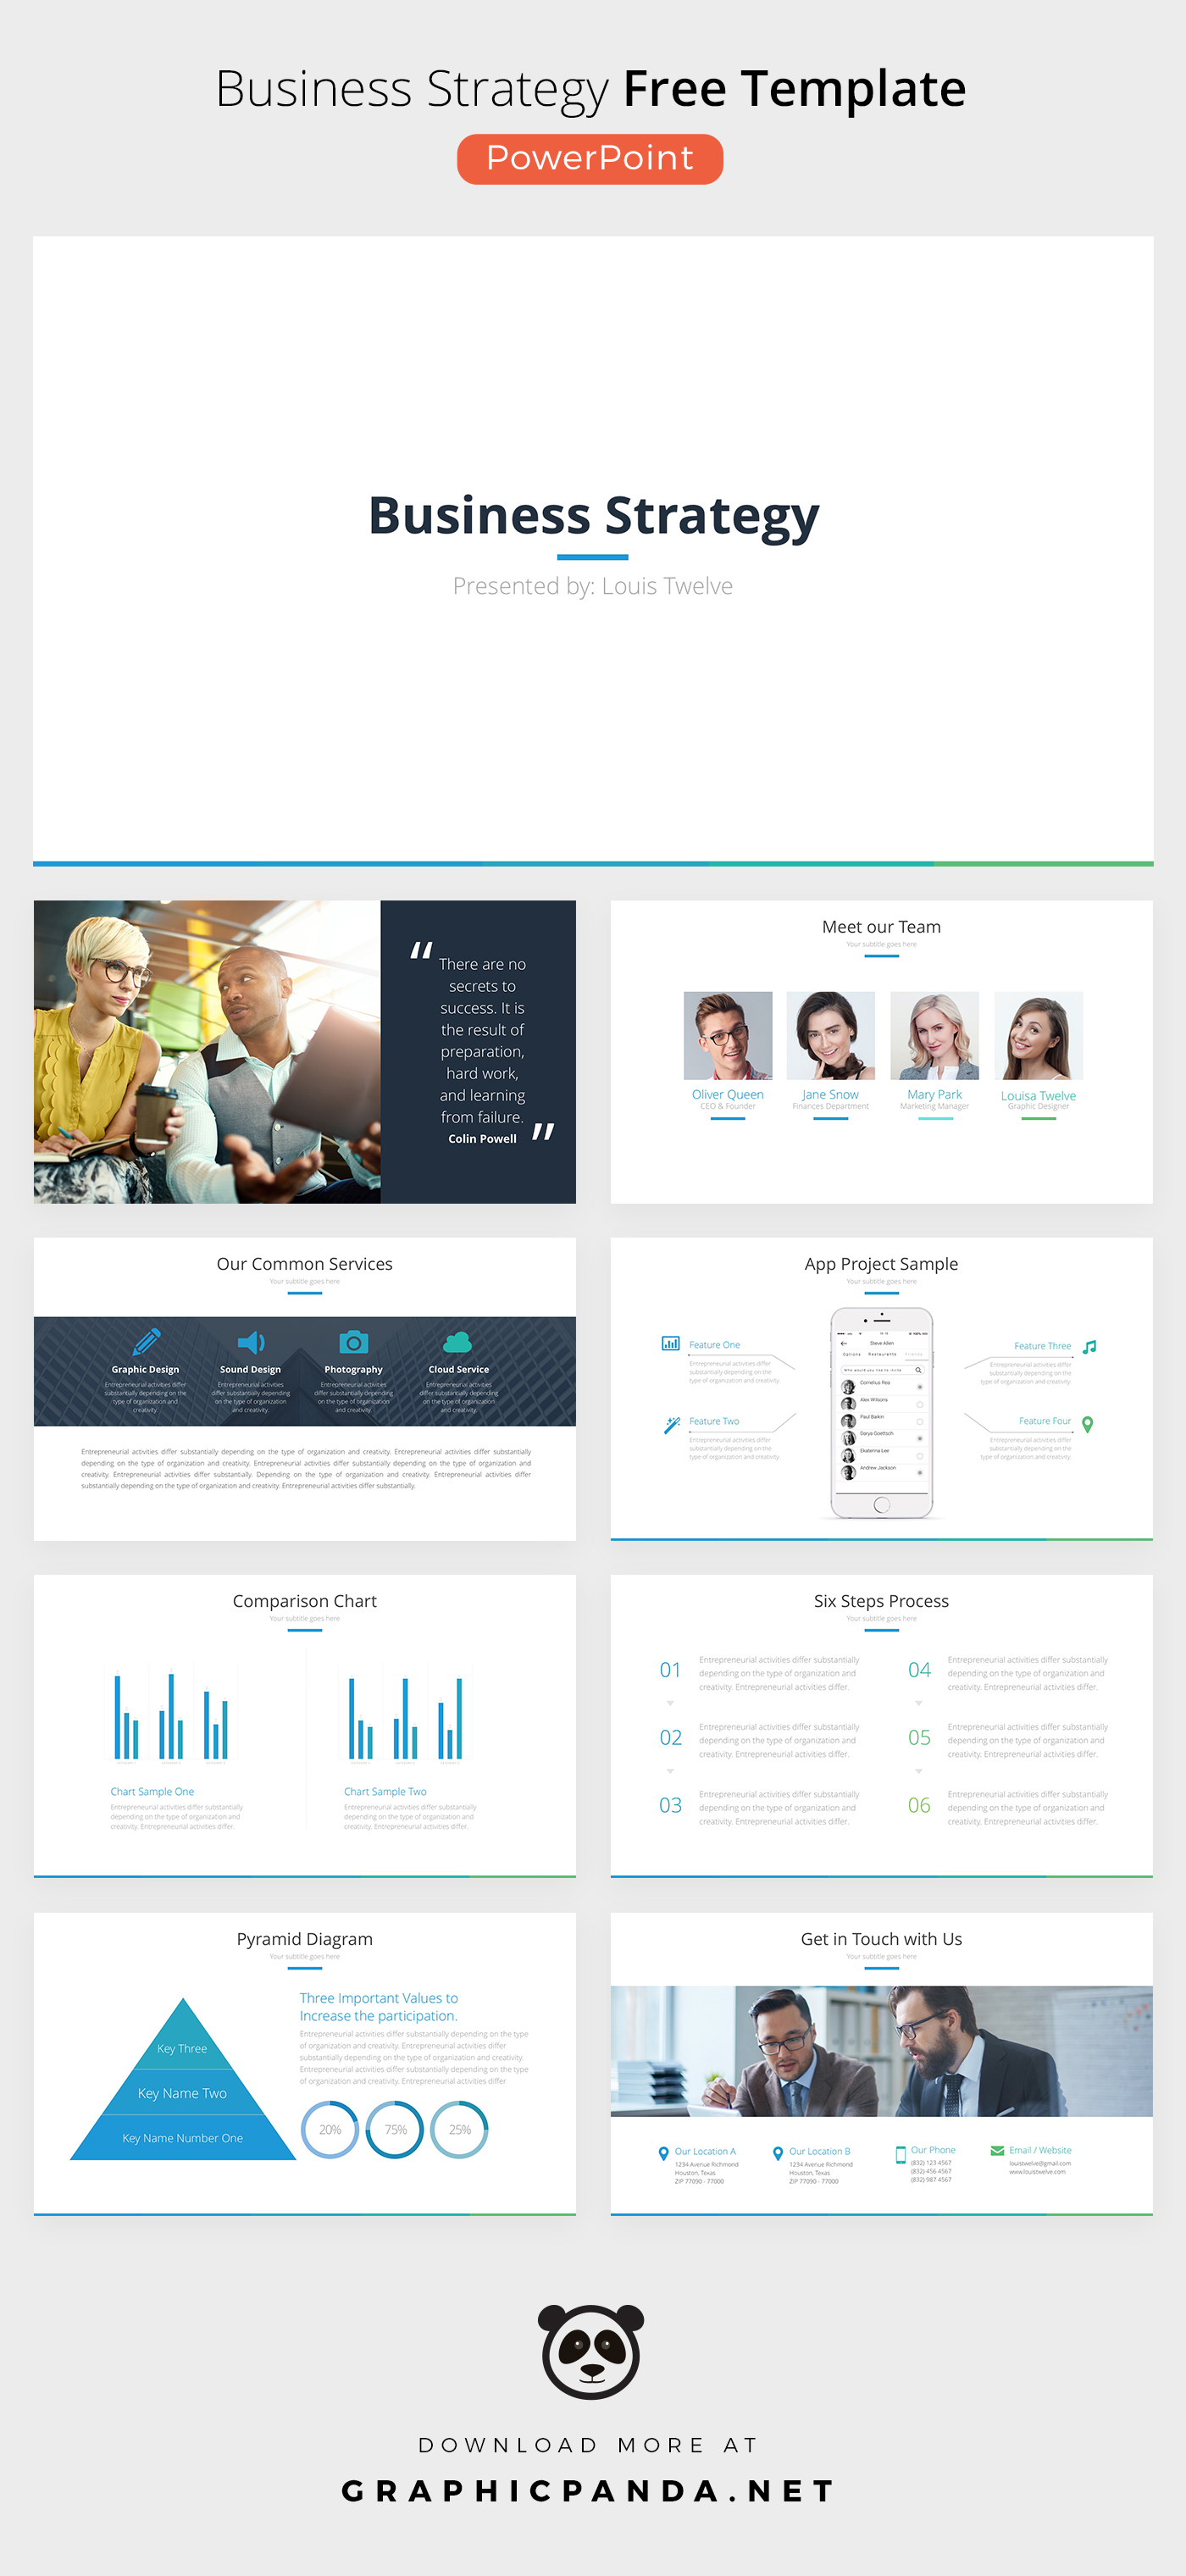 Free business strategy powerpoint template on behance if youre struggling with making a well designed presentation then this business strategy free powerpoint template can help you achieve the creative and wajeb Choice Image